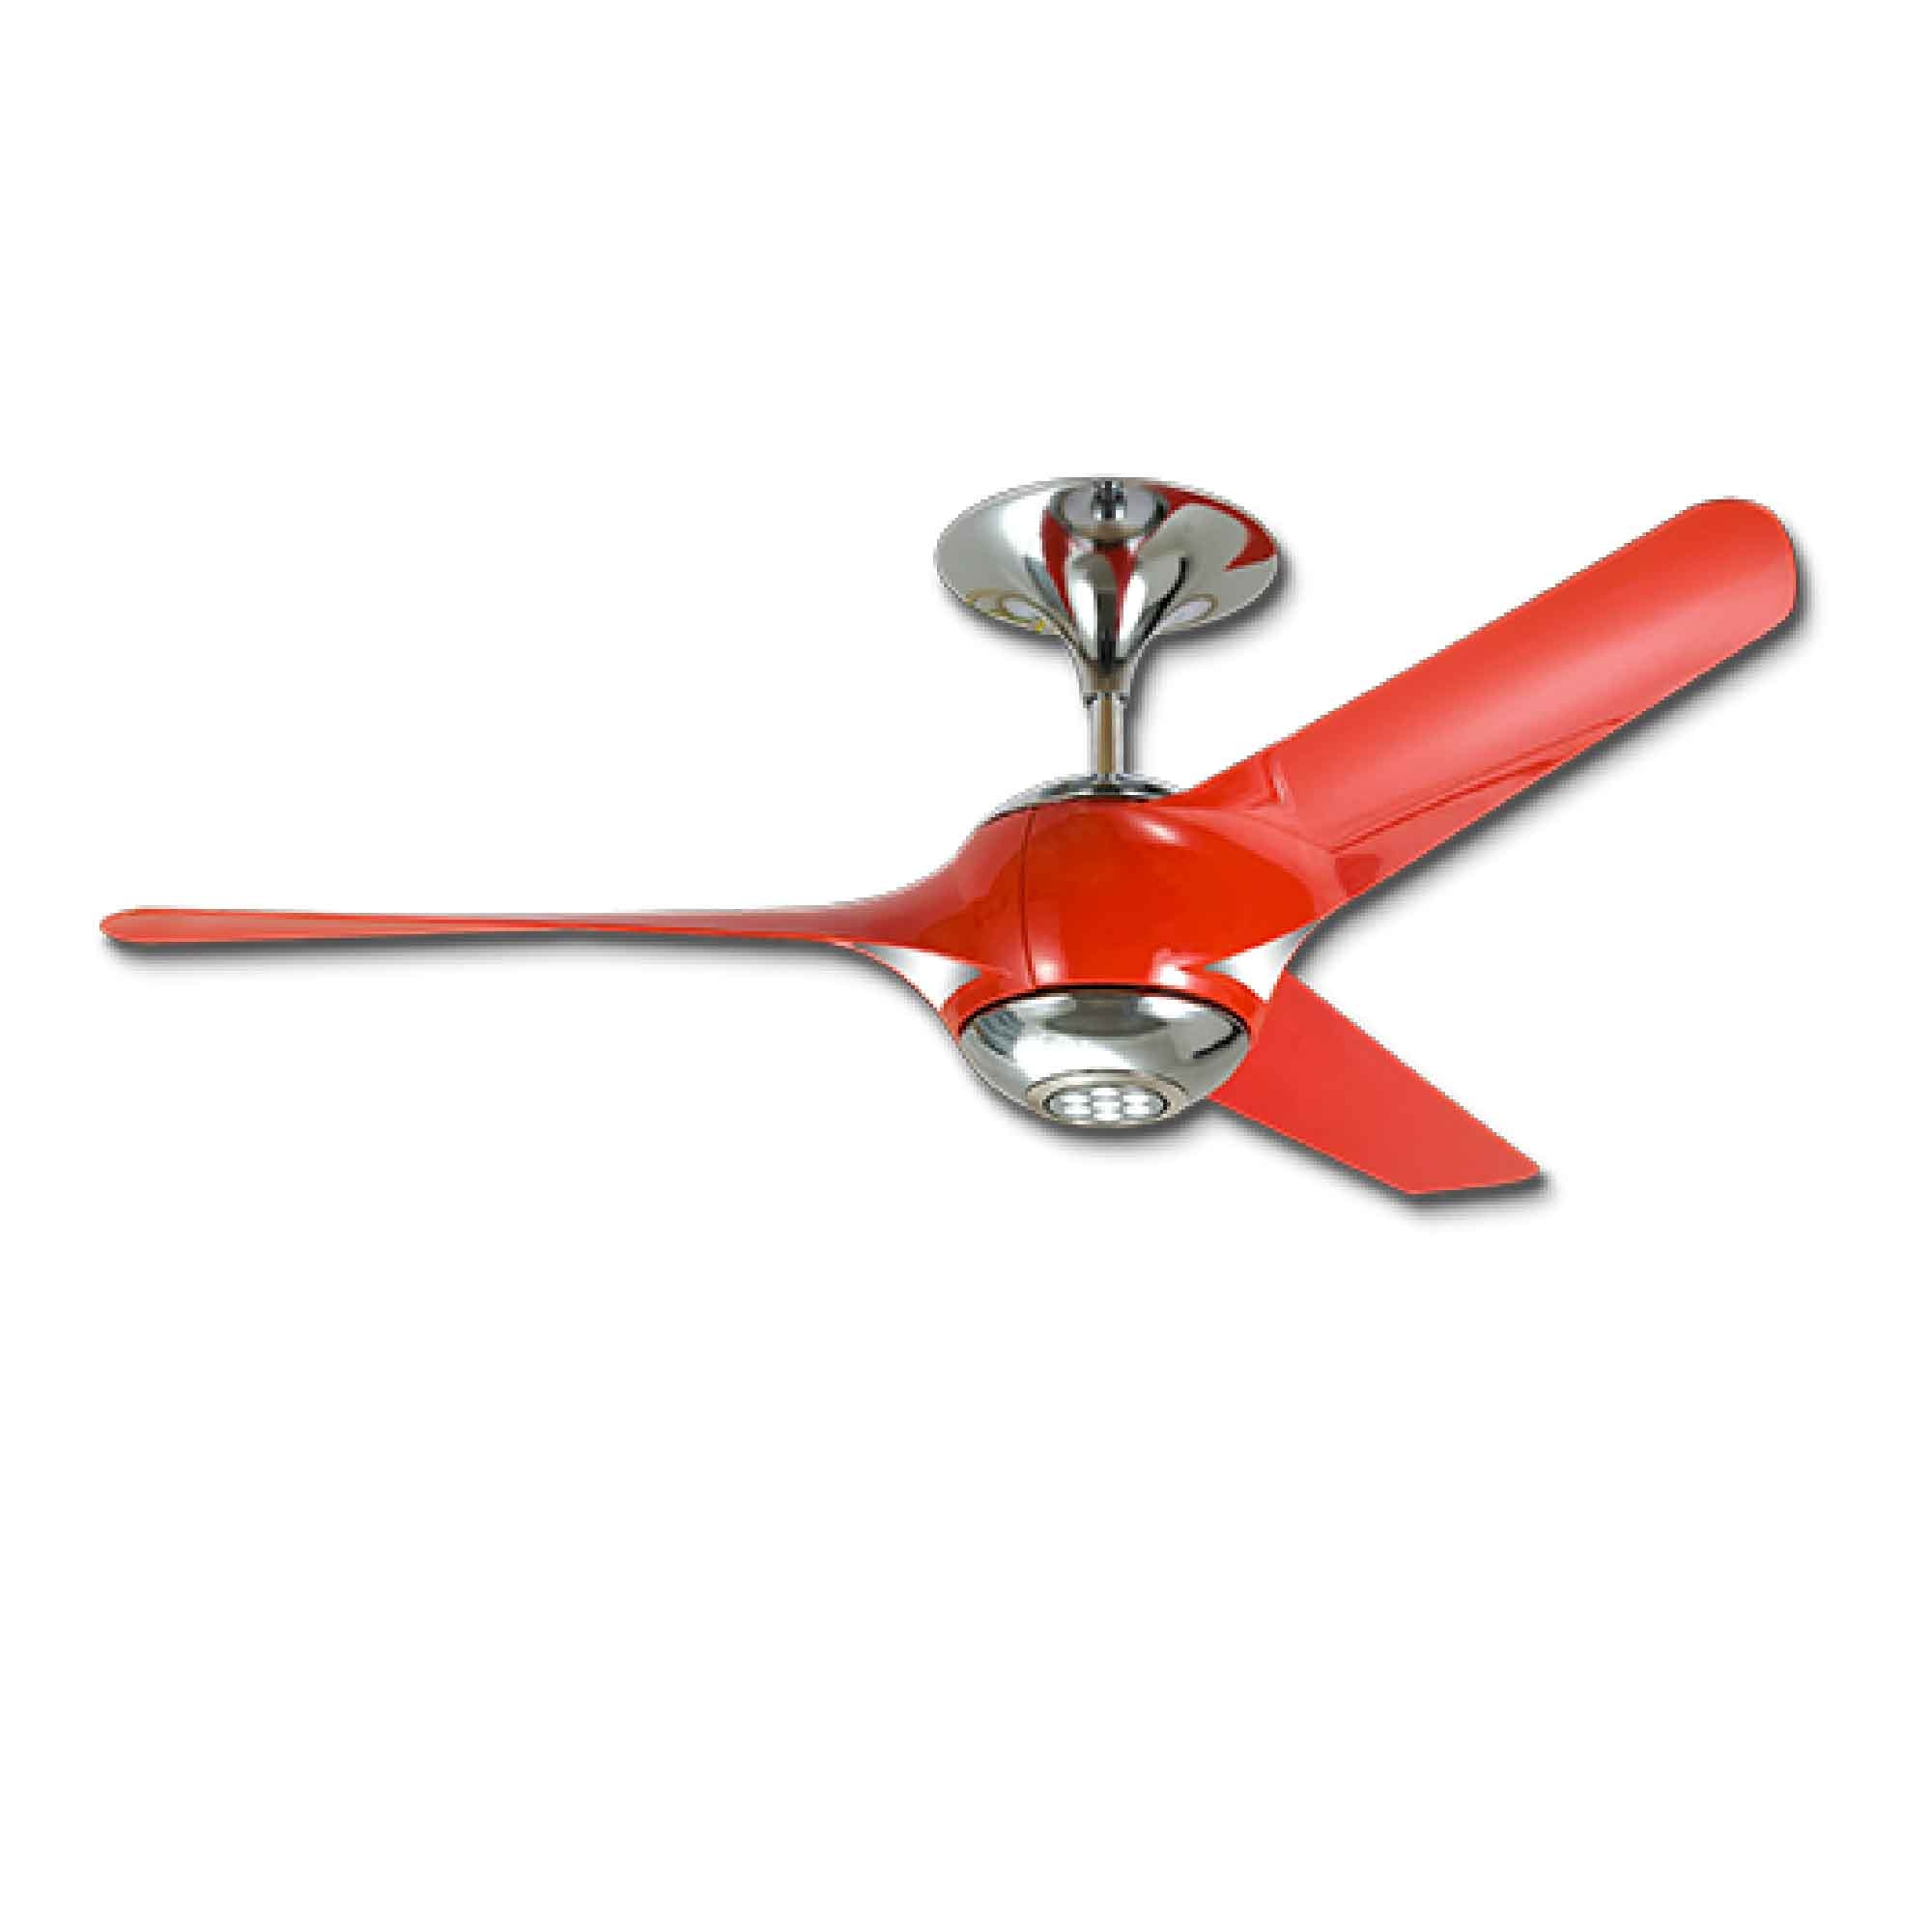 Deka ceiling fan with light evo3 56 end 532020 336 pm deka ceiling fan with light evo3 56 super bright led aloadofball Image collections